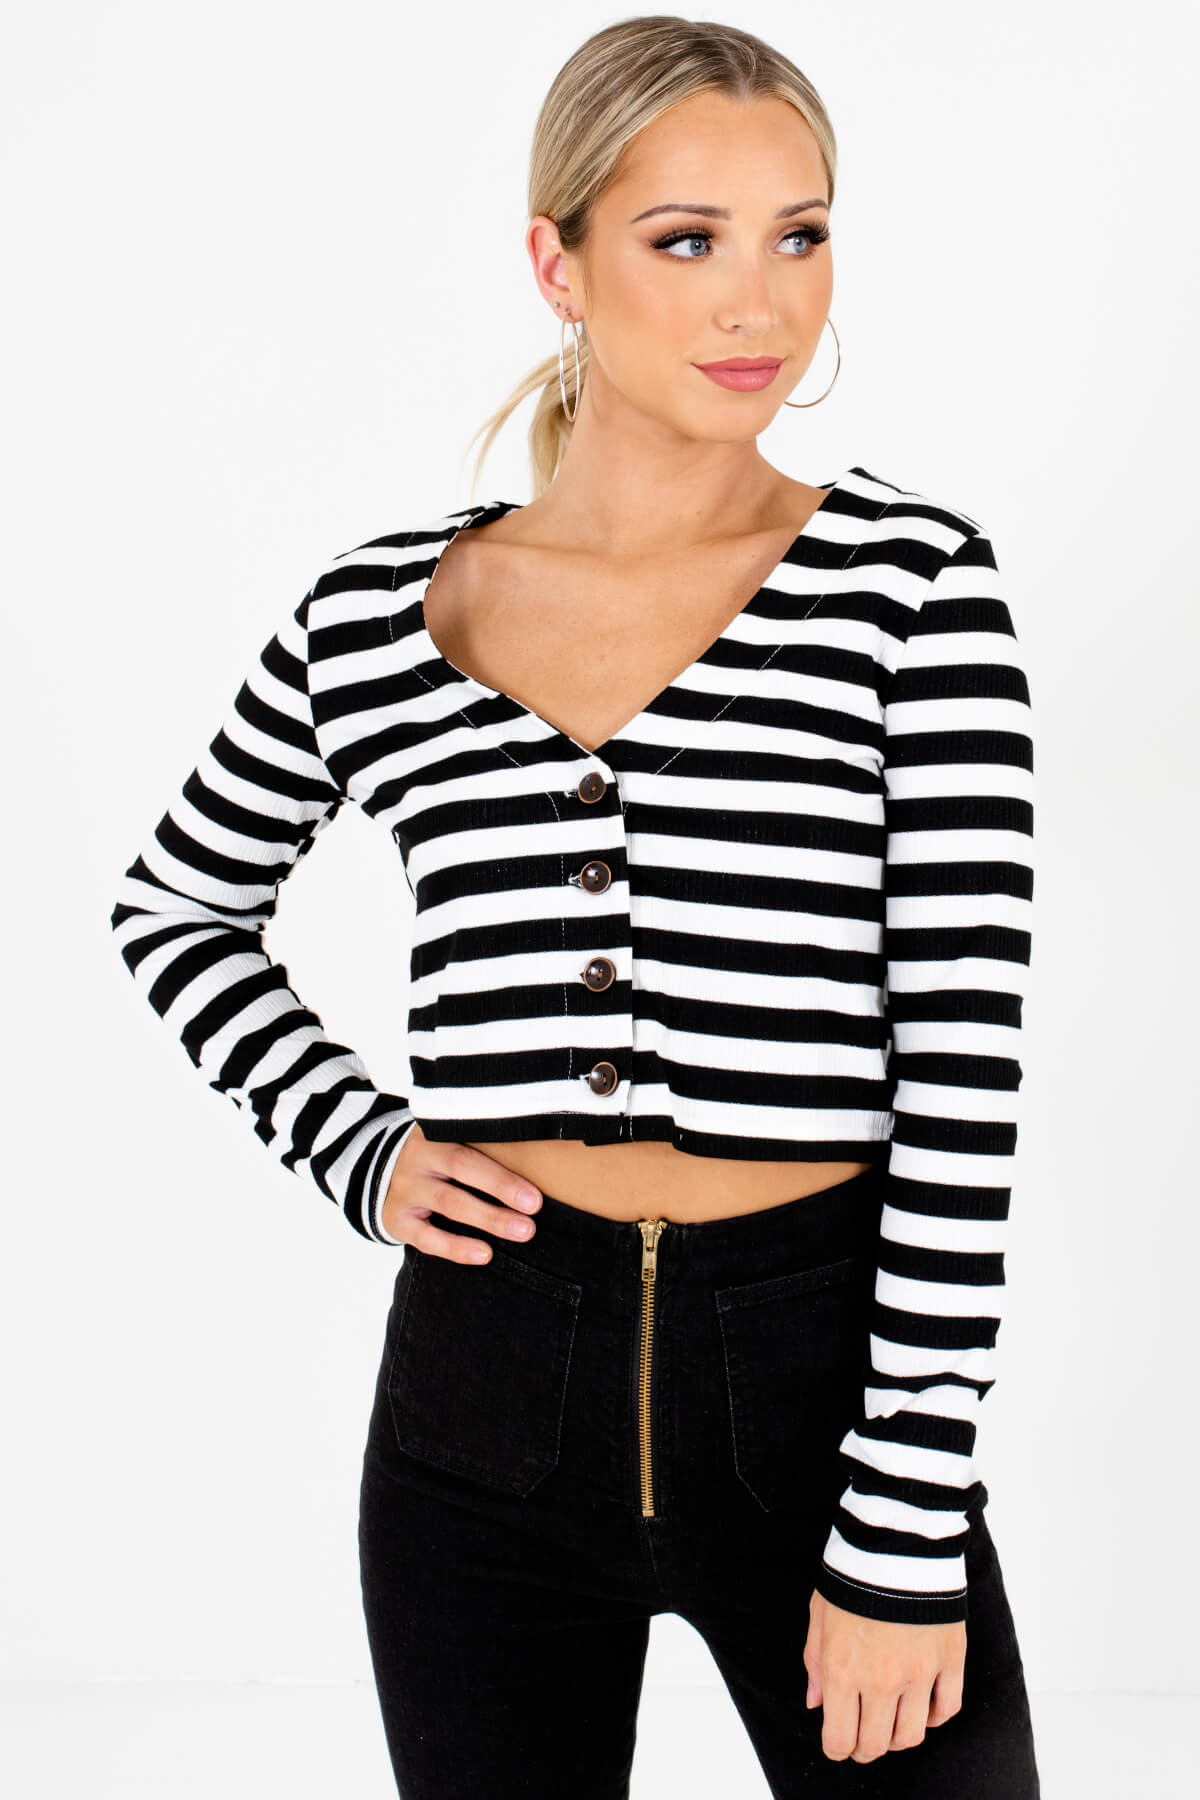 Black and White Striped Boutique Crop Tops for Women